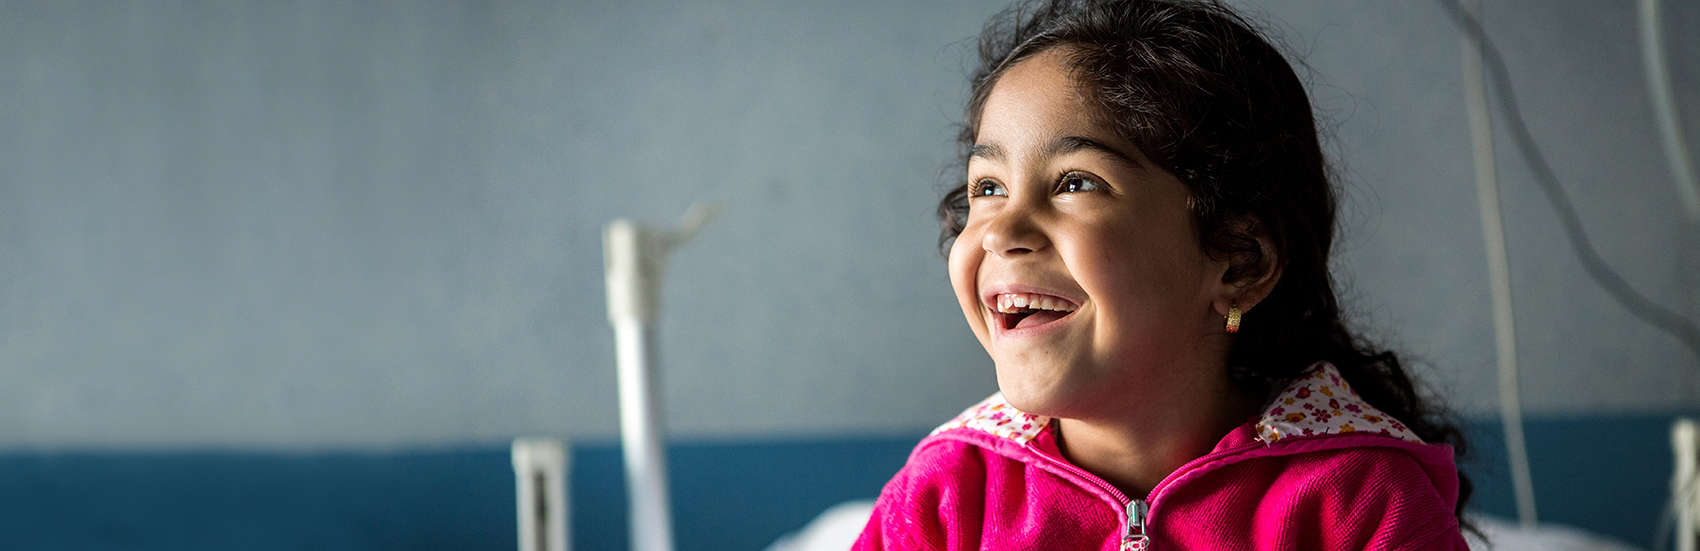 Amena*, five, from Syria, plays in her hospital bedroom where she was treated for asthma after being rescued by the Save the Children vessel in the Mediterranean Sea, Catania, Sicily, Italy. Photo credit: Louis Leeson / Save the Children 2016.